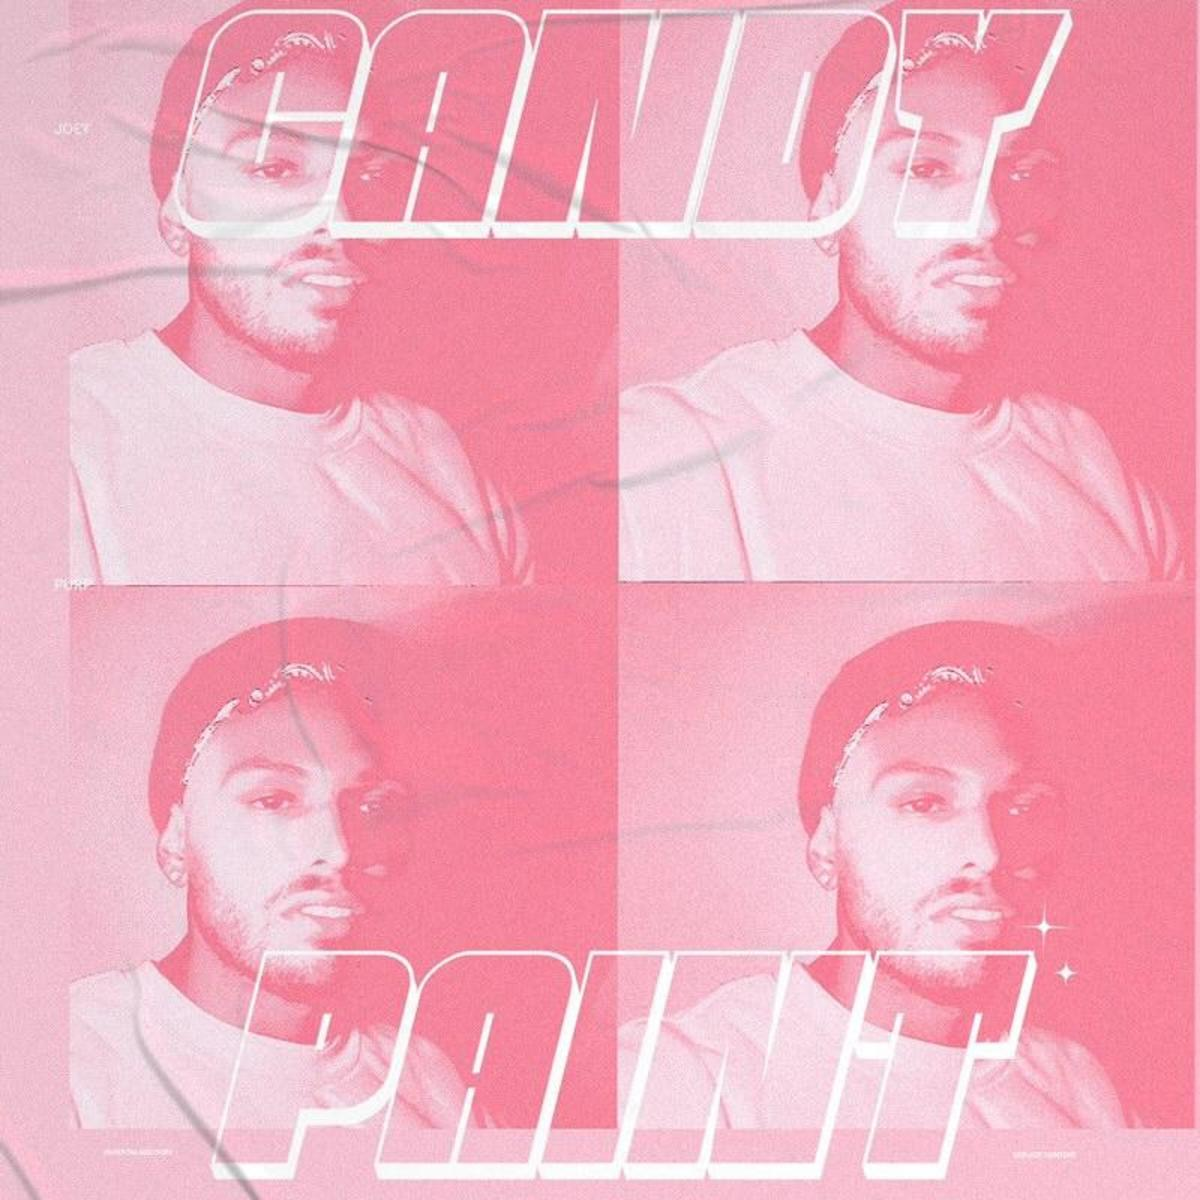 MP3: Joey Purp - CANDYPAINT